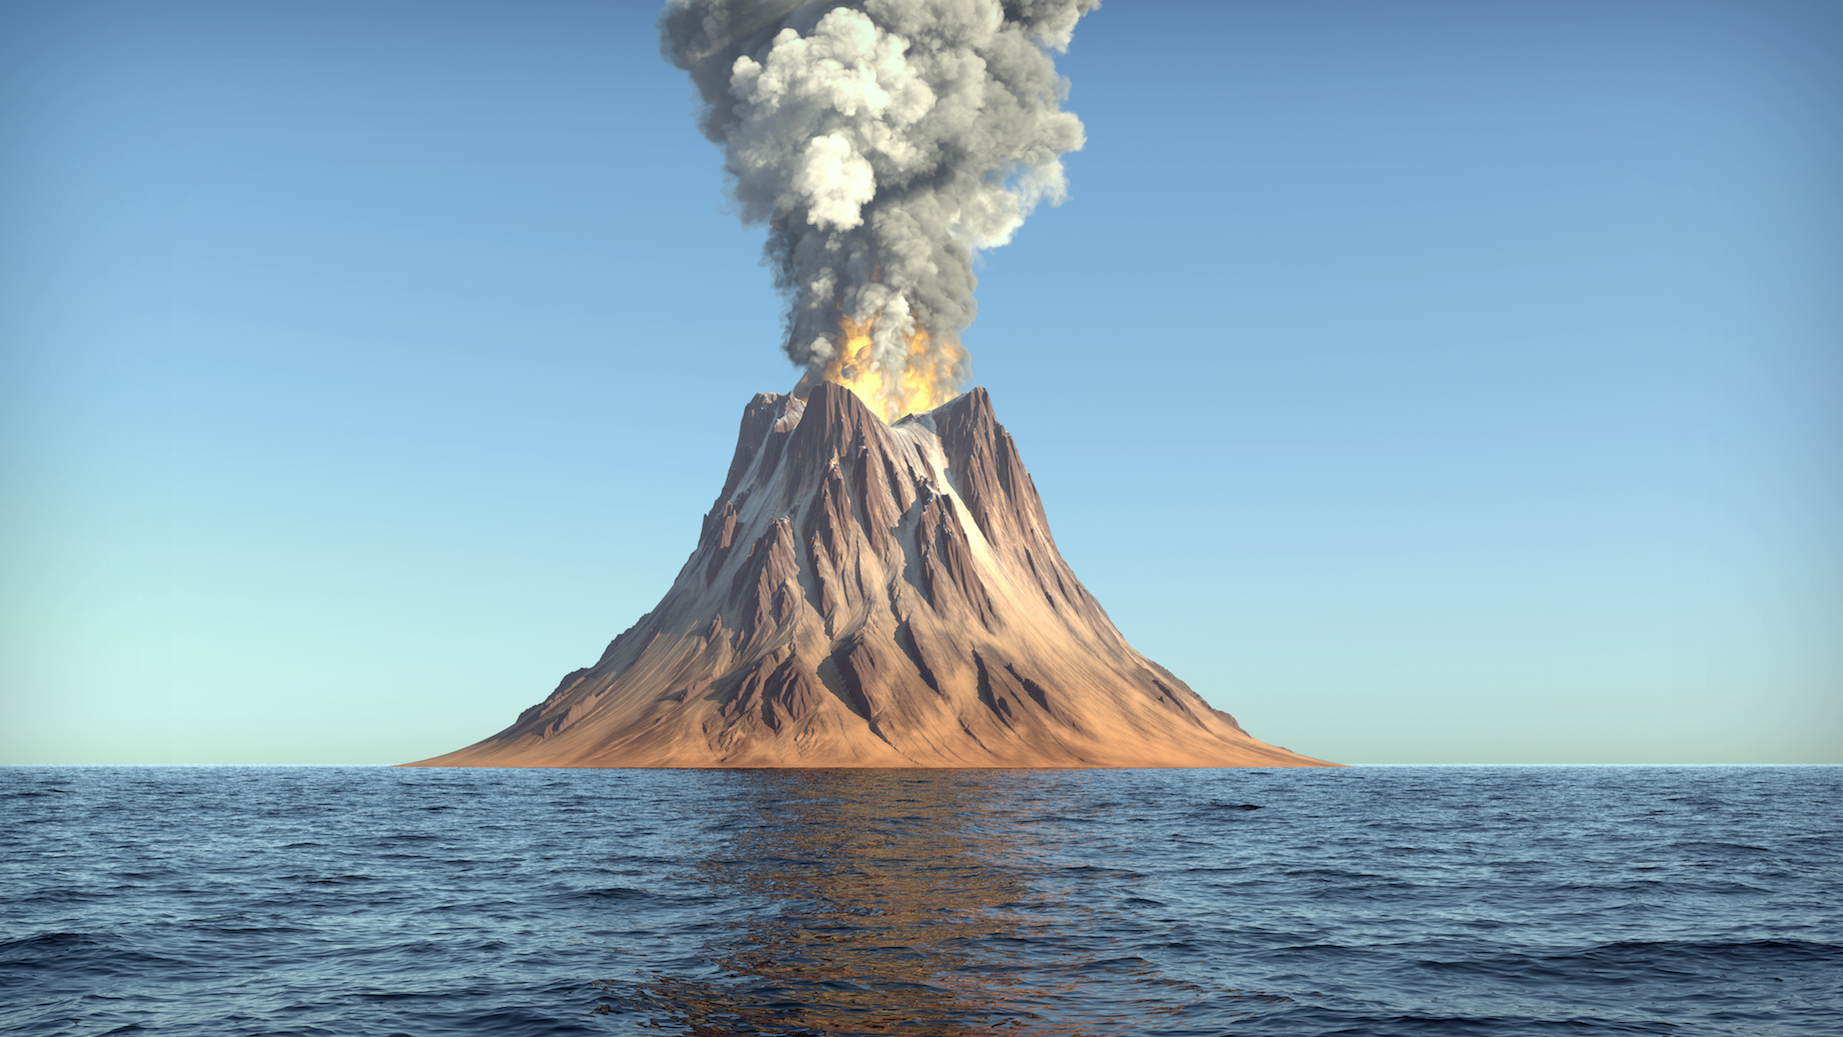 Volcanic activity in the oceans induced by falling sea levels may have caused an unusual decline in the Earth's temperature 80,000 years ago.